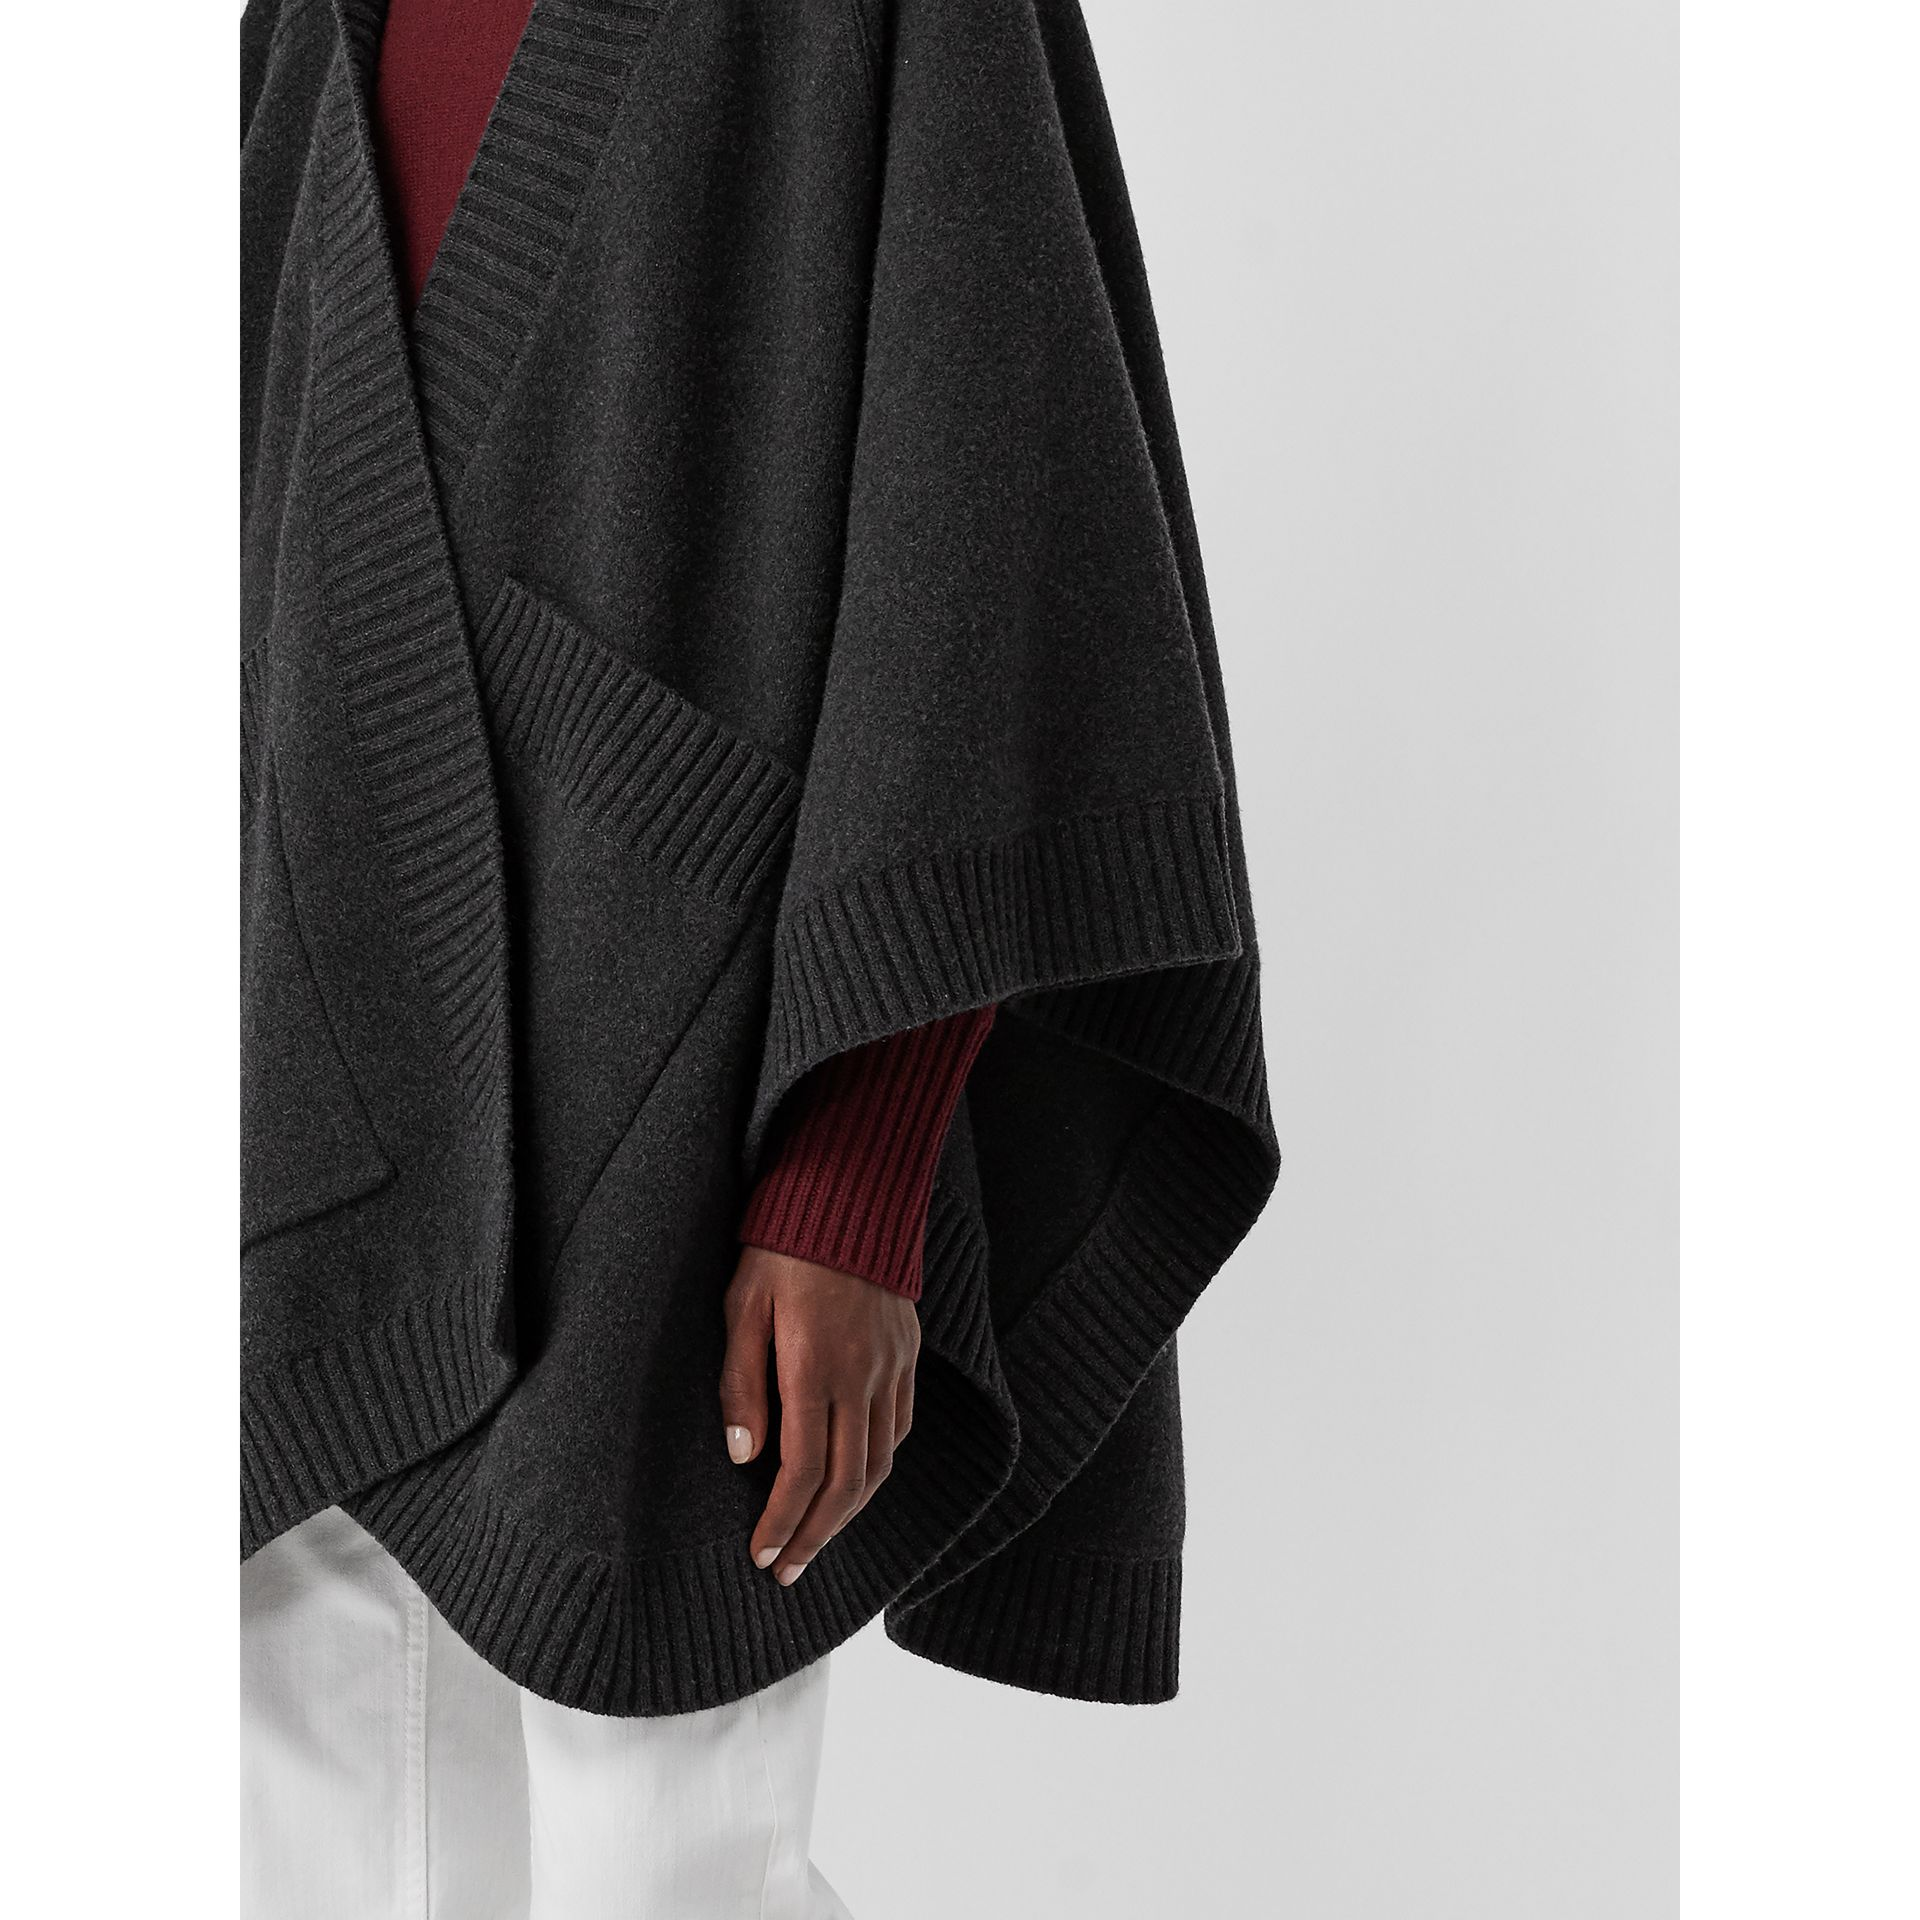 Crest Jacquard Wool Blend Hooded Cape in Charcoal - Women | Burberry - gallery image 1